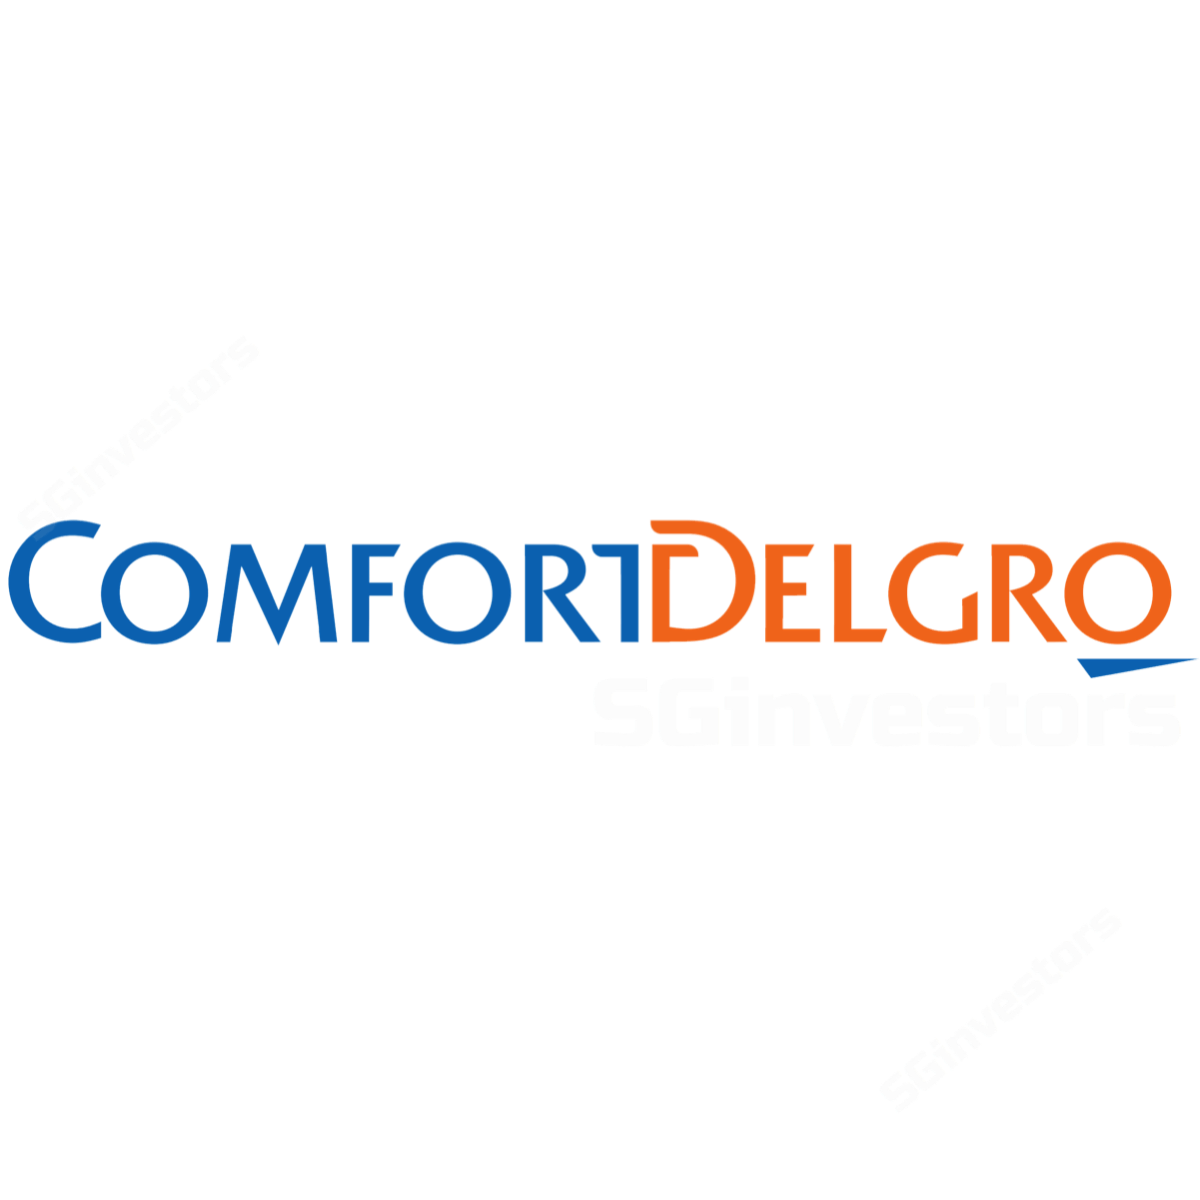 ComfortDelGro Corporation - RHB Invest 2017-02-13: Public Transport Services Growth Aid